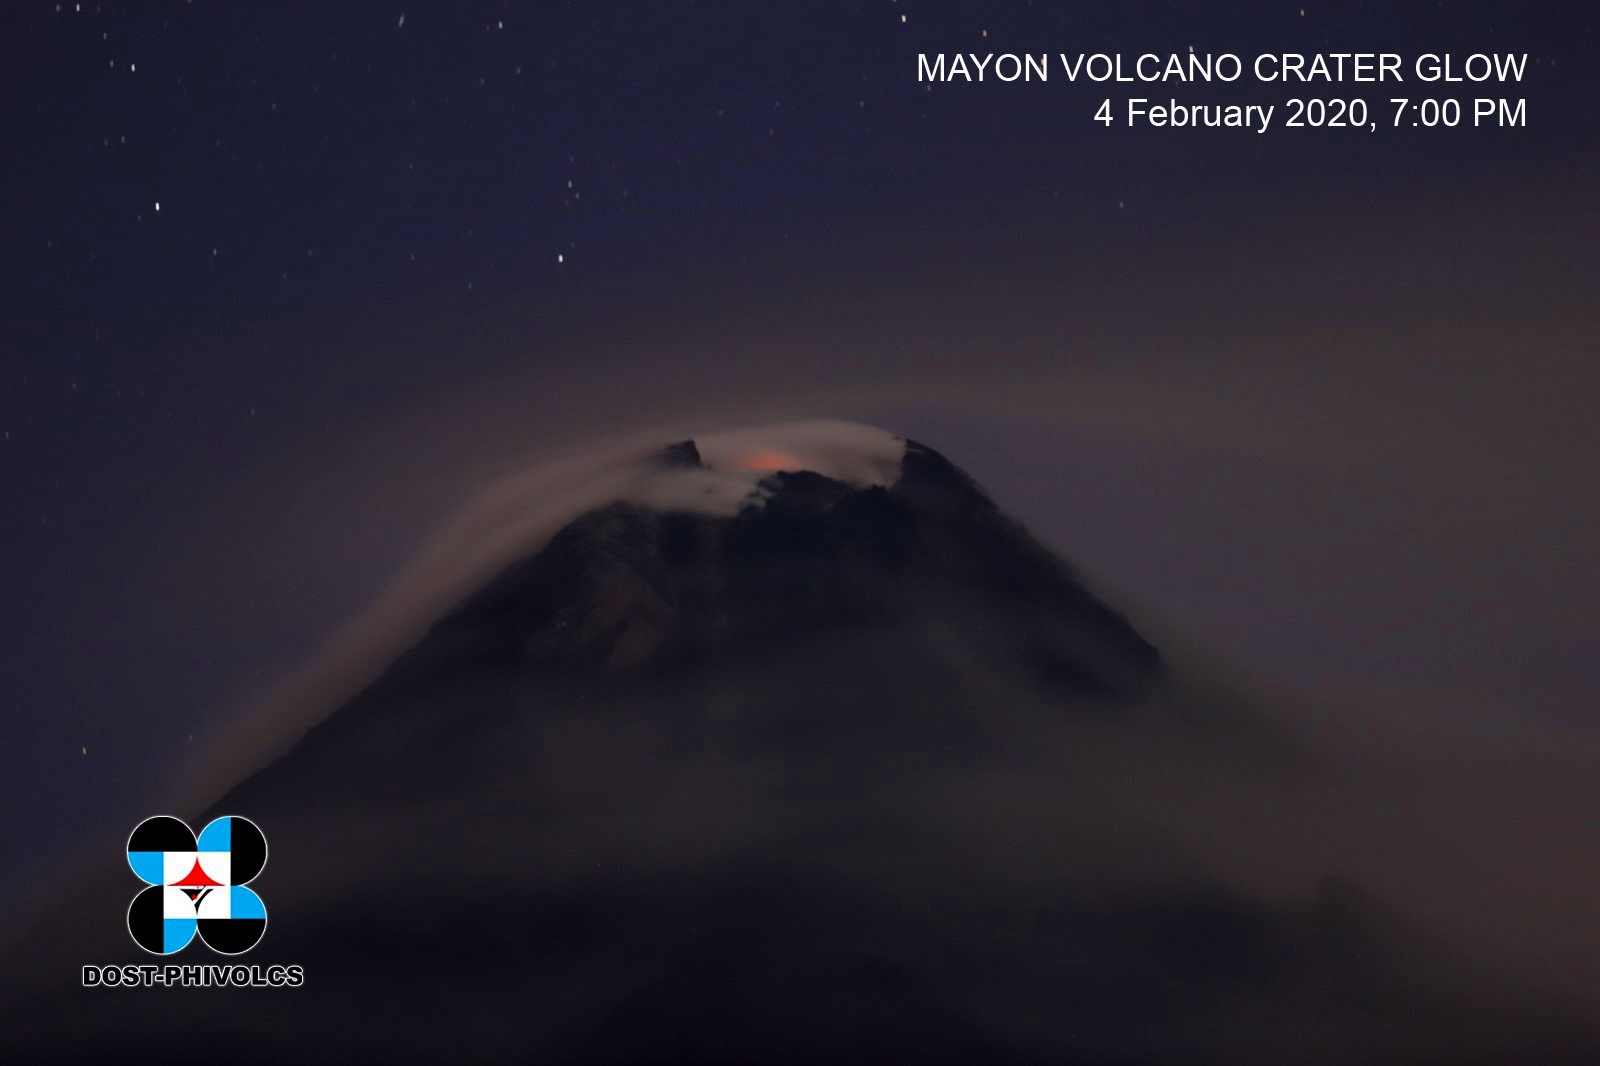 Mayon - incandescence at the summit crater - photo archive Dost-Phivolcs 04.02.2020 / 19h